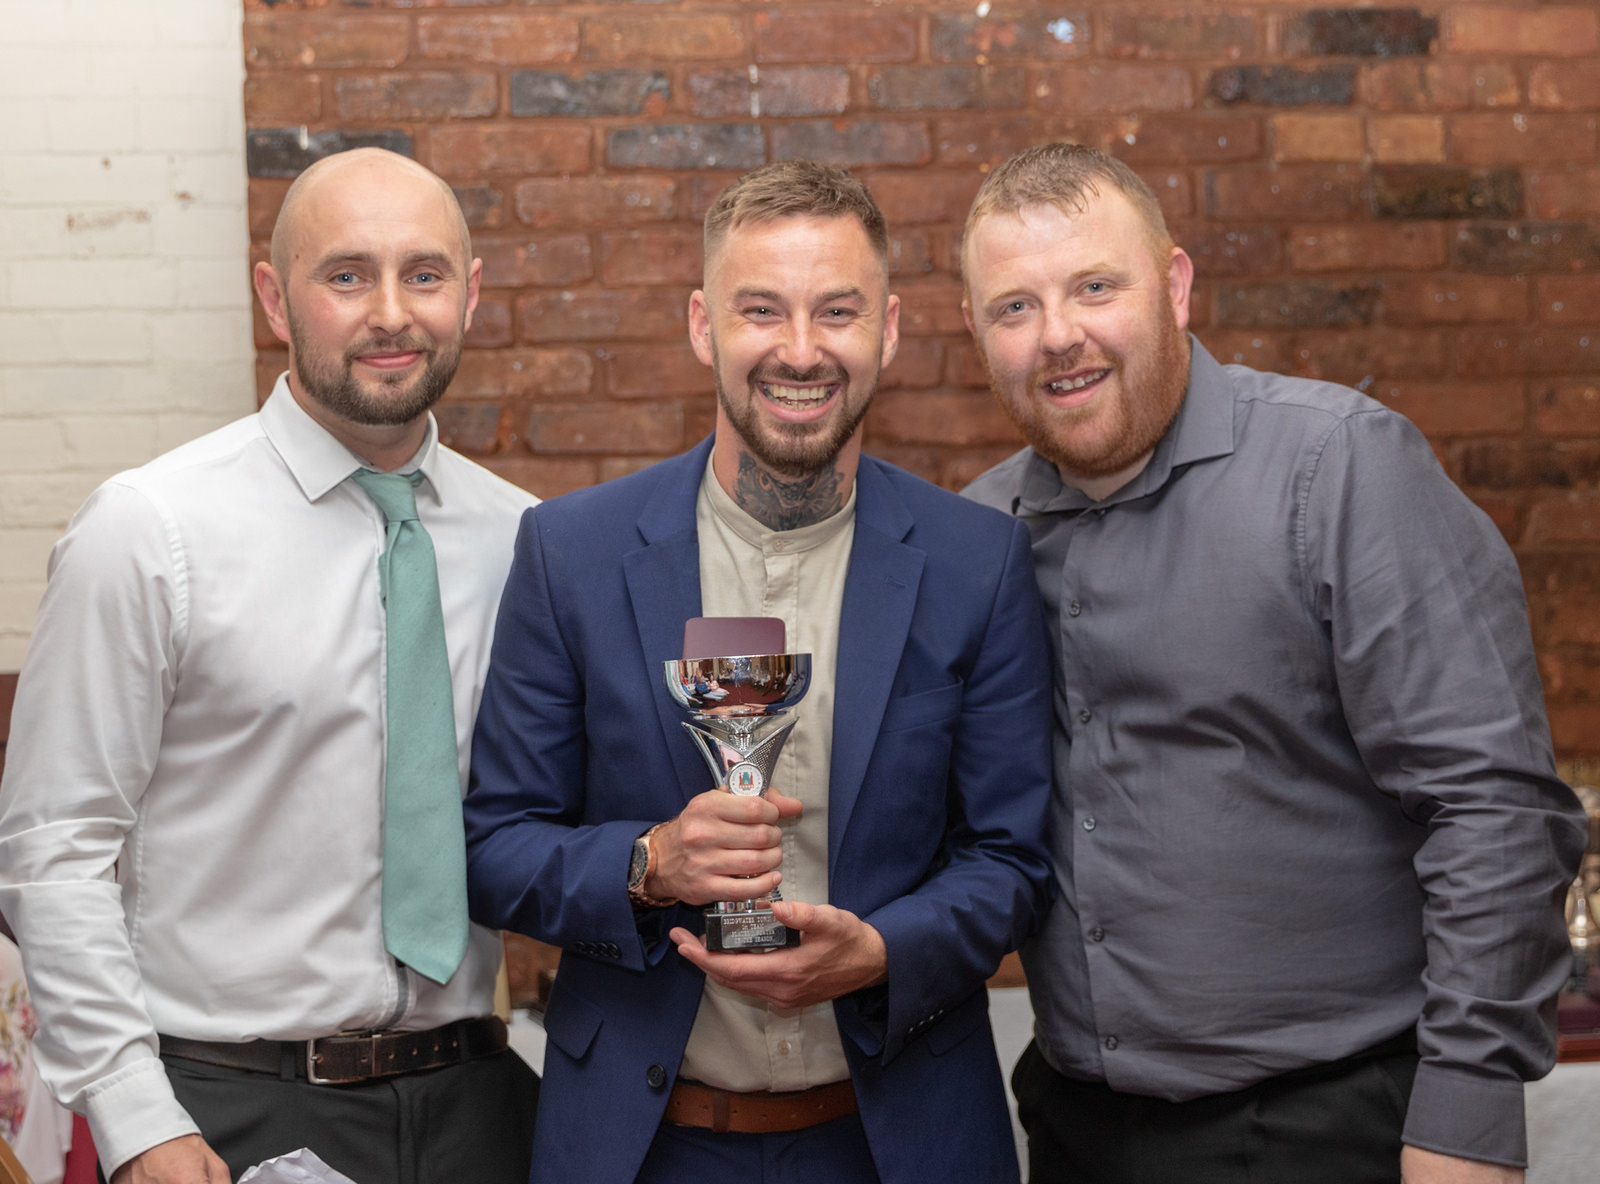 STAR MAN: Jack Taylor (pictured with managers Dave Pearse, left, and Karl Baggaley) was top scorer, Players' Player and Supporters' Player of the Season. All pics: Debbie Gould